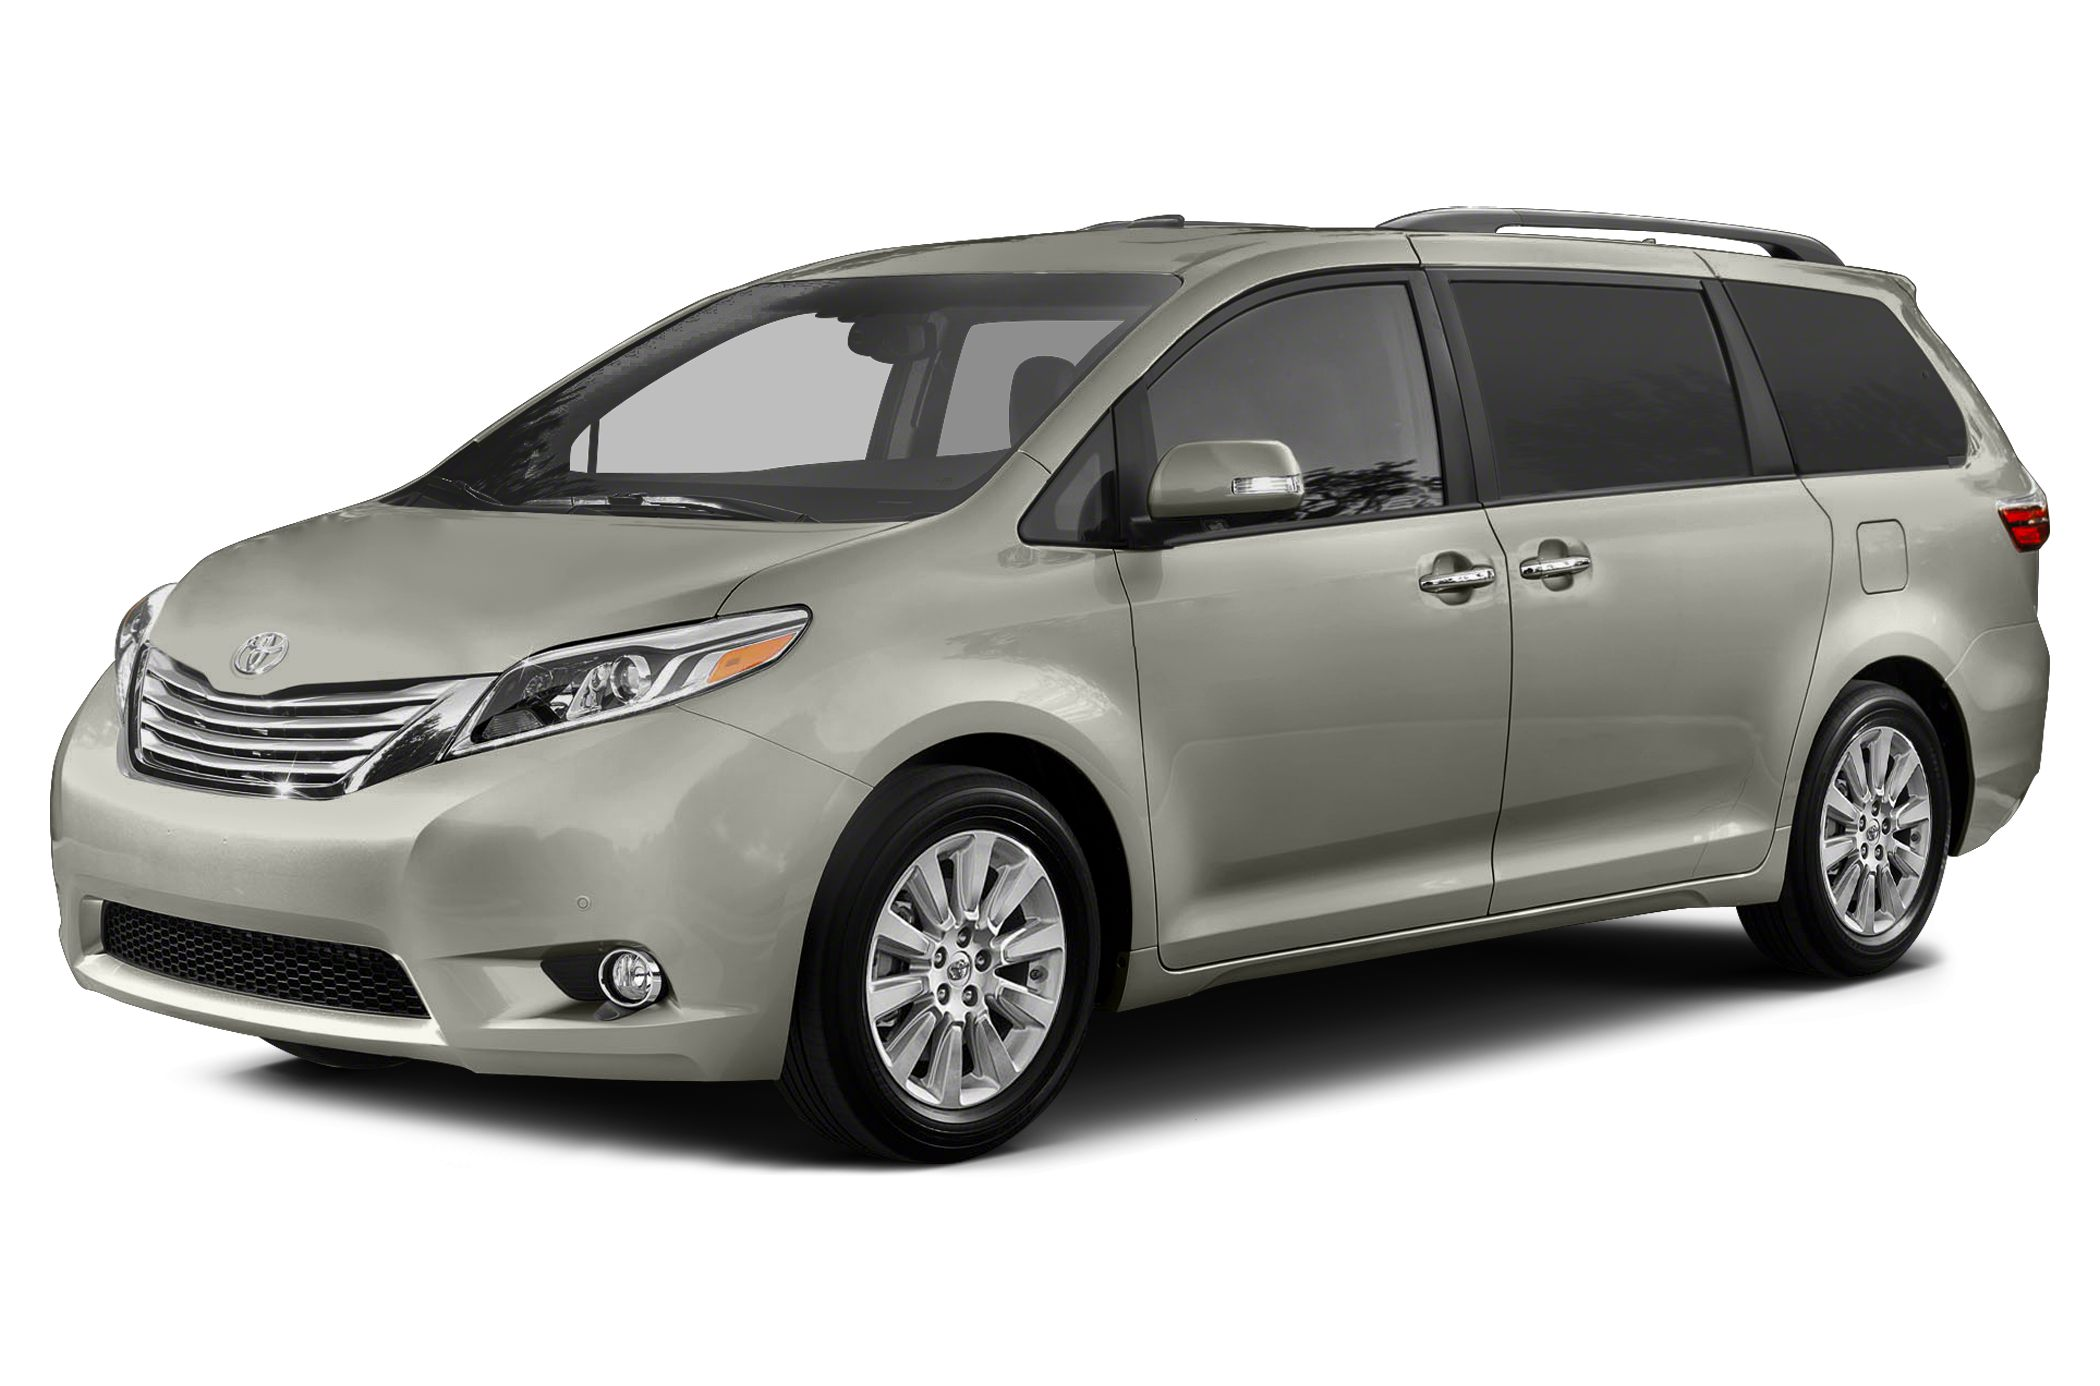 2015 Toyota Sienna LE Minivan for sale in Superior for $32,545 with 5 miles.